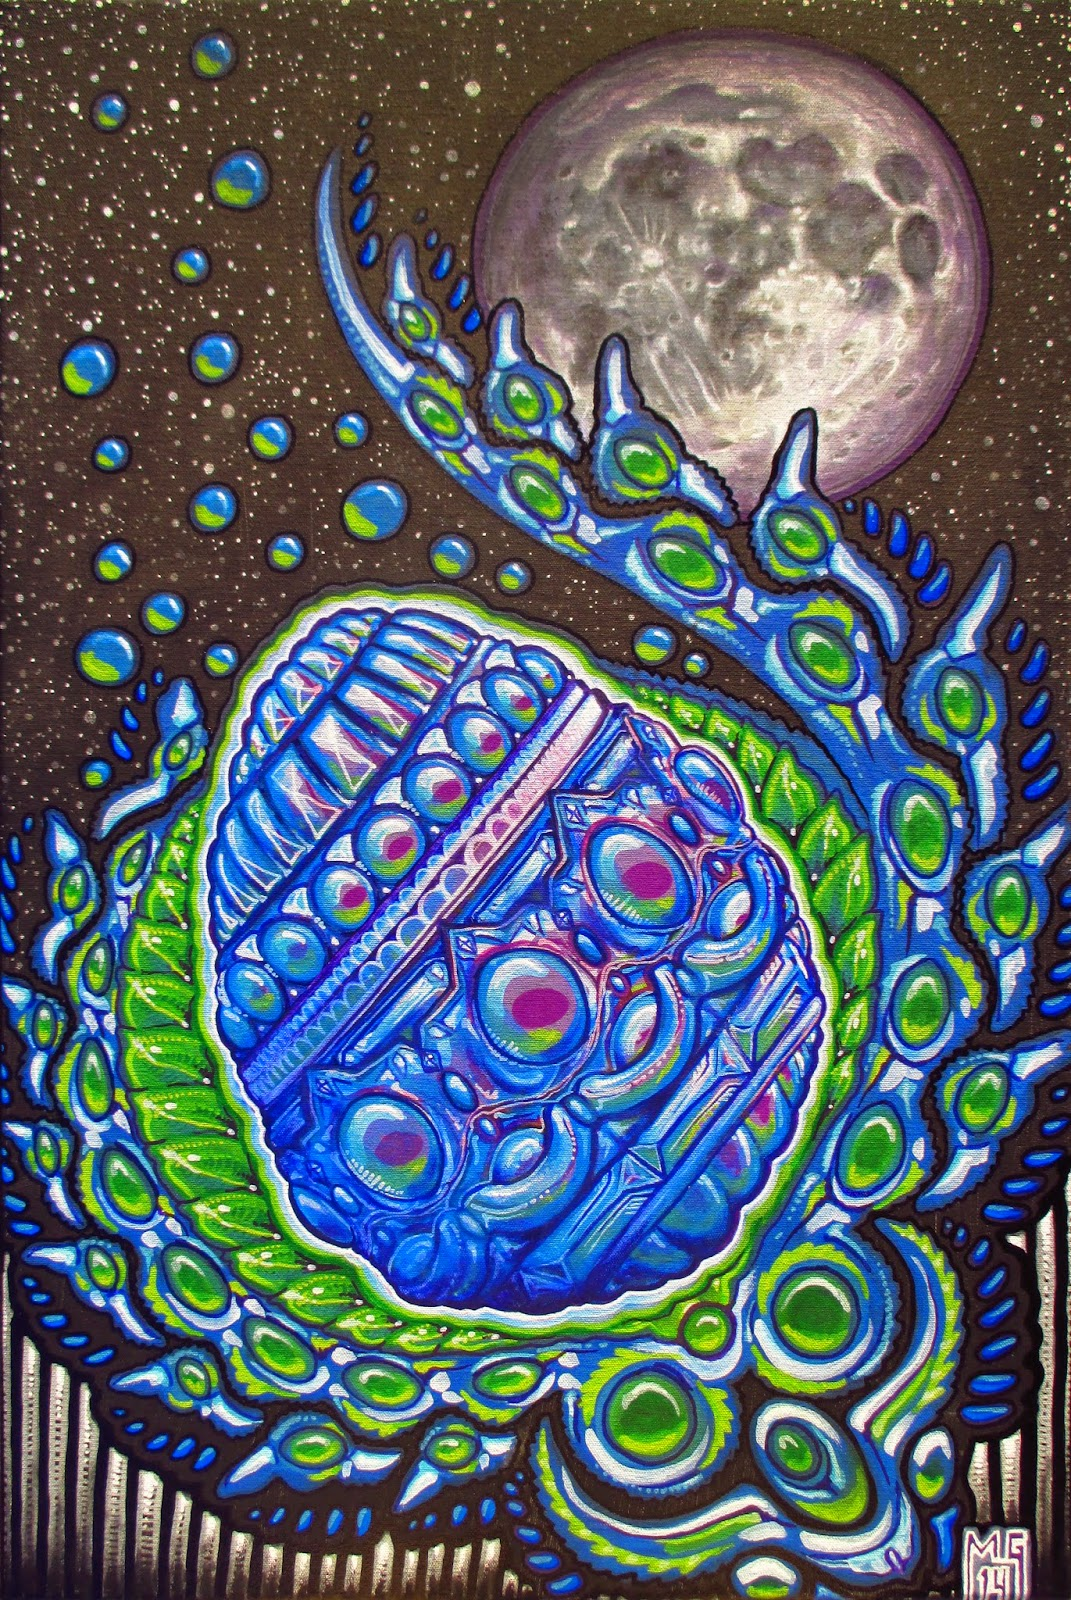 Michael Garfield How To Live In The Future 2014 Giant Atx Se 2 S Blue Wht Gry Crystal Moon Egg Bathes Silver Light